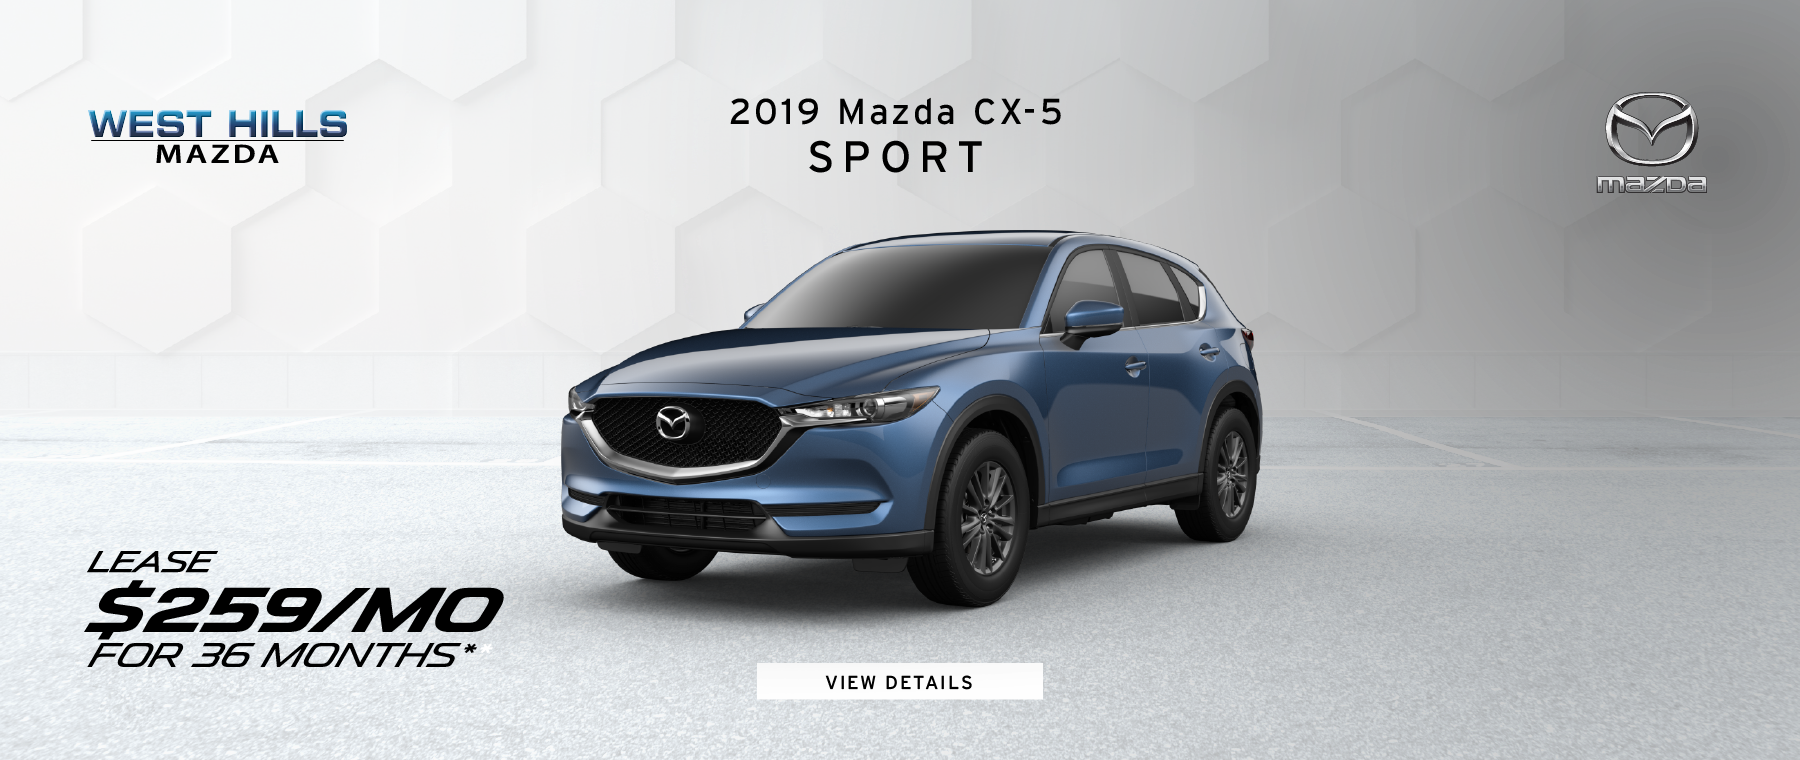 2019 Mazda CX-5 Sport $259/mo. for 36 mos.* *Valid on 2019 Mazda CX-5 Sport. $259 per month for 36 months. $2,995 due at lease signing; includes a $595 acquisition fee. Valid on VIN: JM3KFBBMXK1515112. MSRP is $26,745. No security deposit with approved credit. Lease for well qualified buyers. Excludes taxes, title, and fees. 36 monthly payments required. Not all lessees will qualify for lowest payment through participating lender. Residency restrictions apply. Lessee responsible for registration, insurance, maintenance, excess wear/tear & for mileage over 10,000 miles/per year at $0.15/mile per year. Option to purchase at lease end. A negotiable dealer documentary service fee of up to $150 may be added to the sale price or capitalized cost. Offer Expires: 3/31/2019.